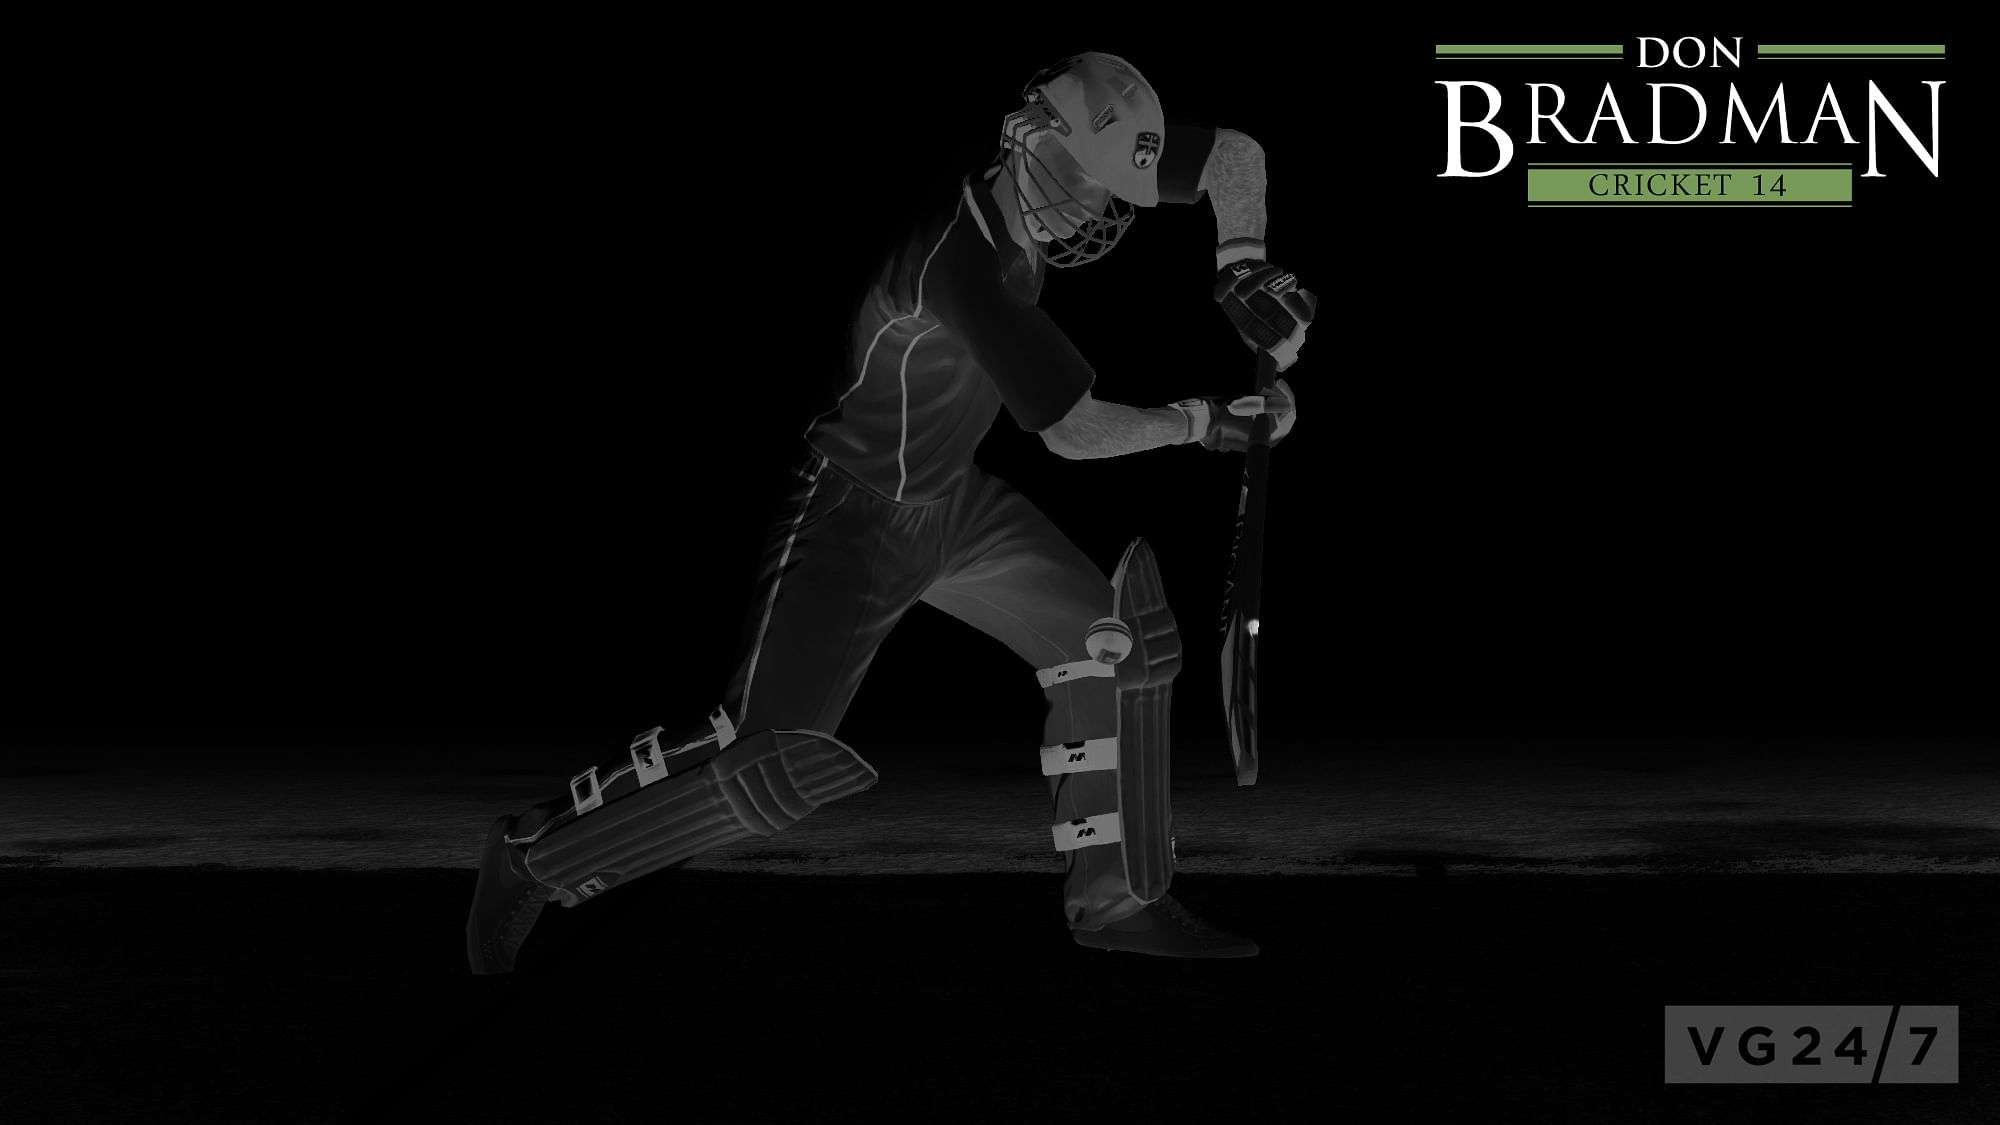 Don Bradman Cricket 2014- The best Cricket game ever?